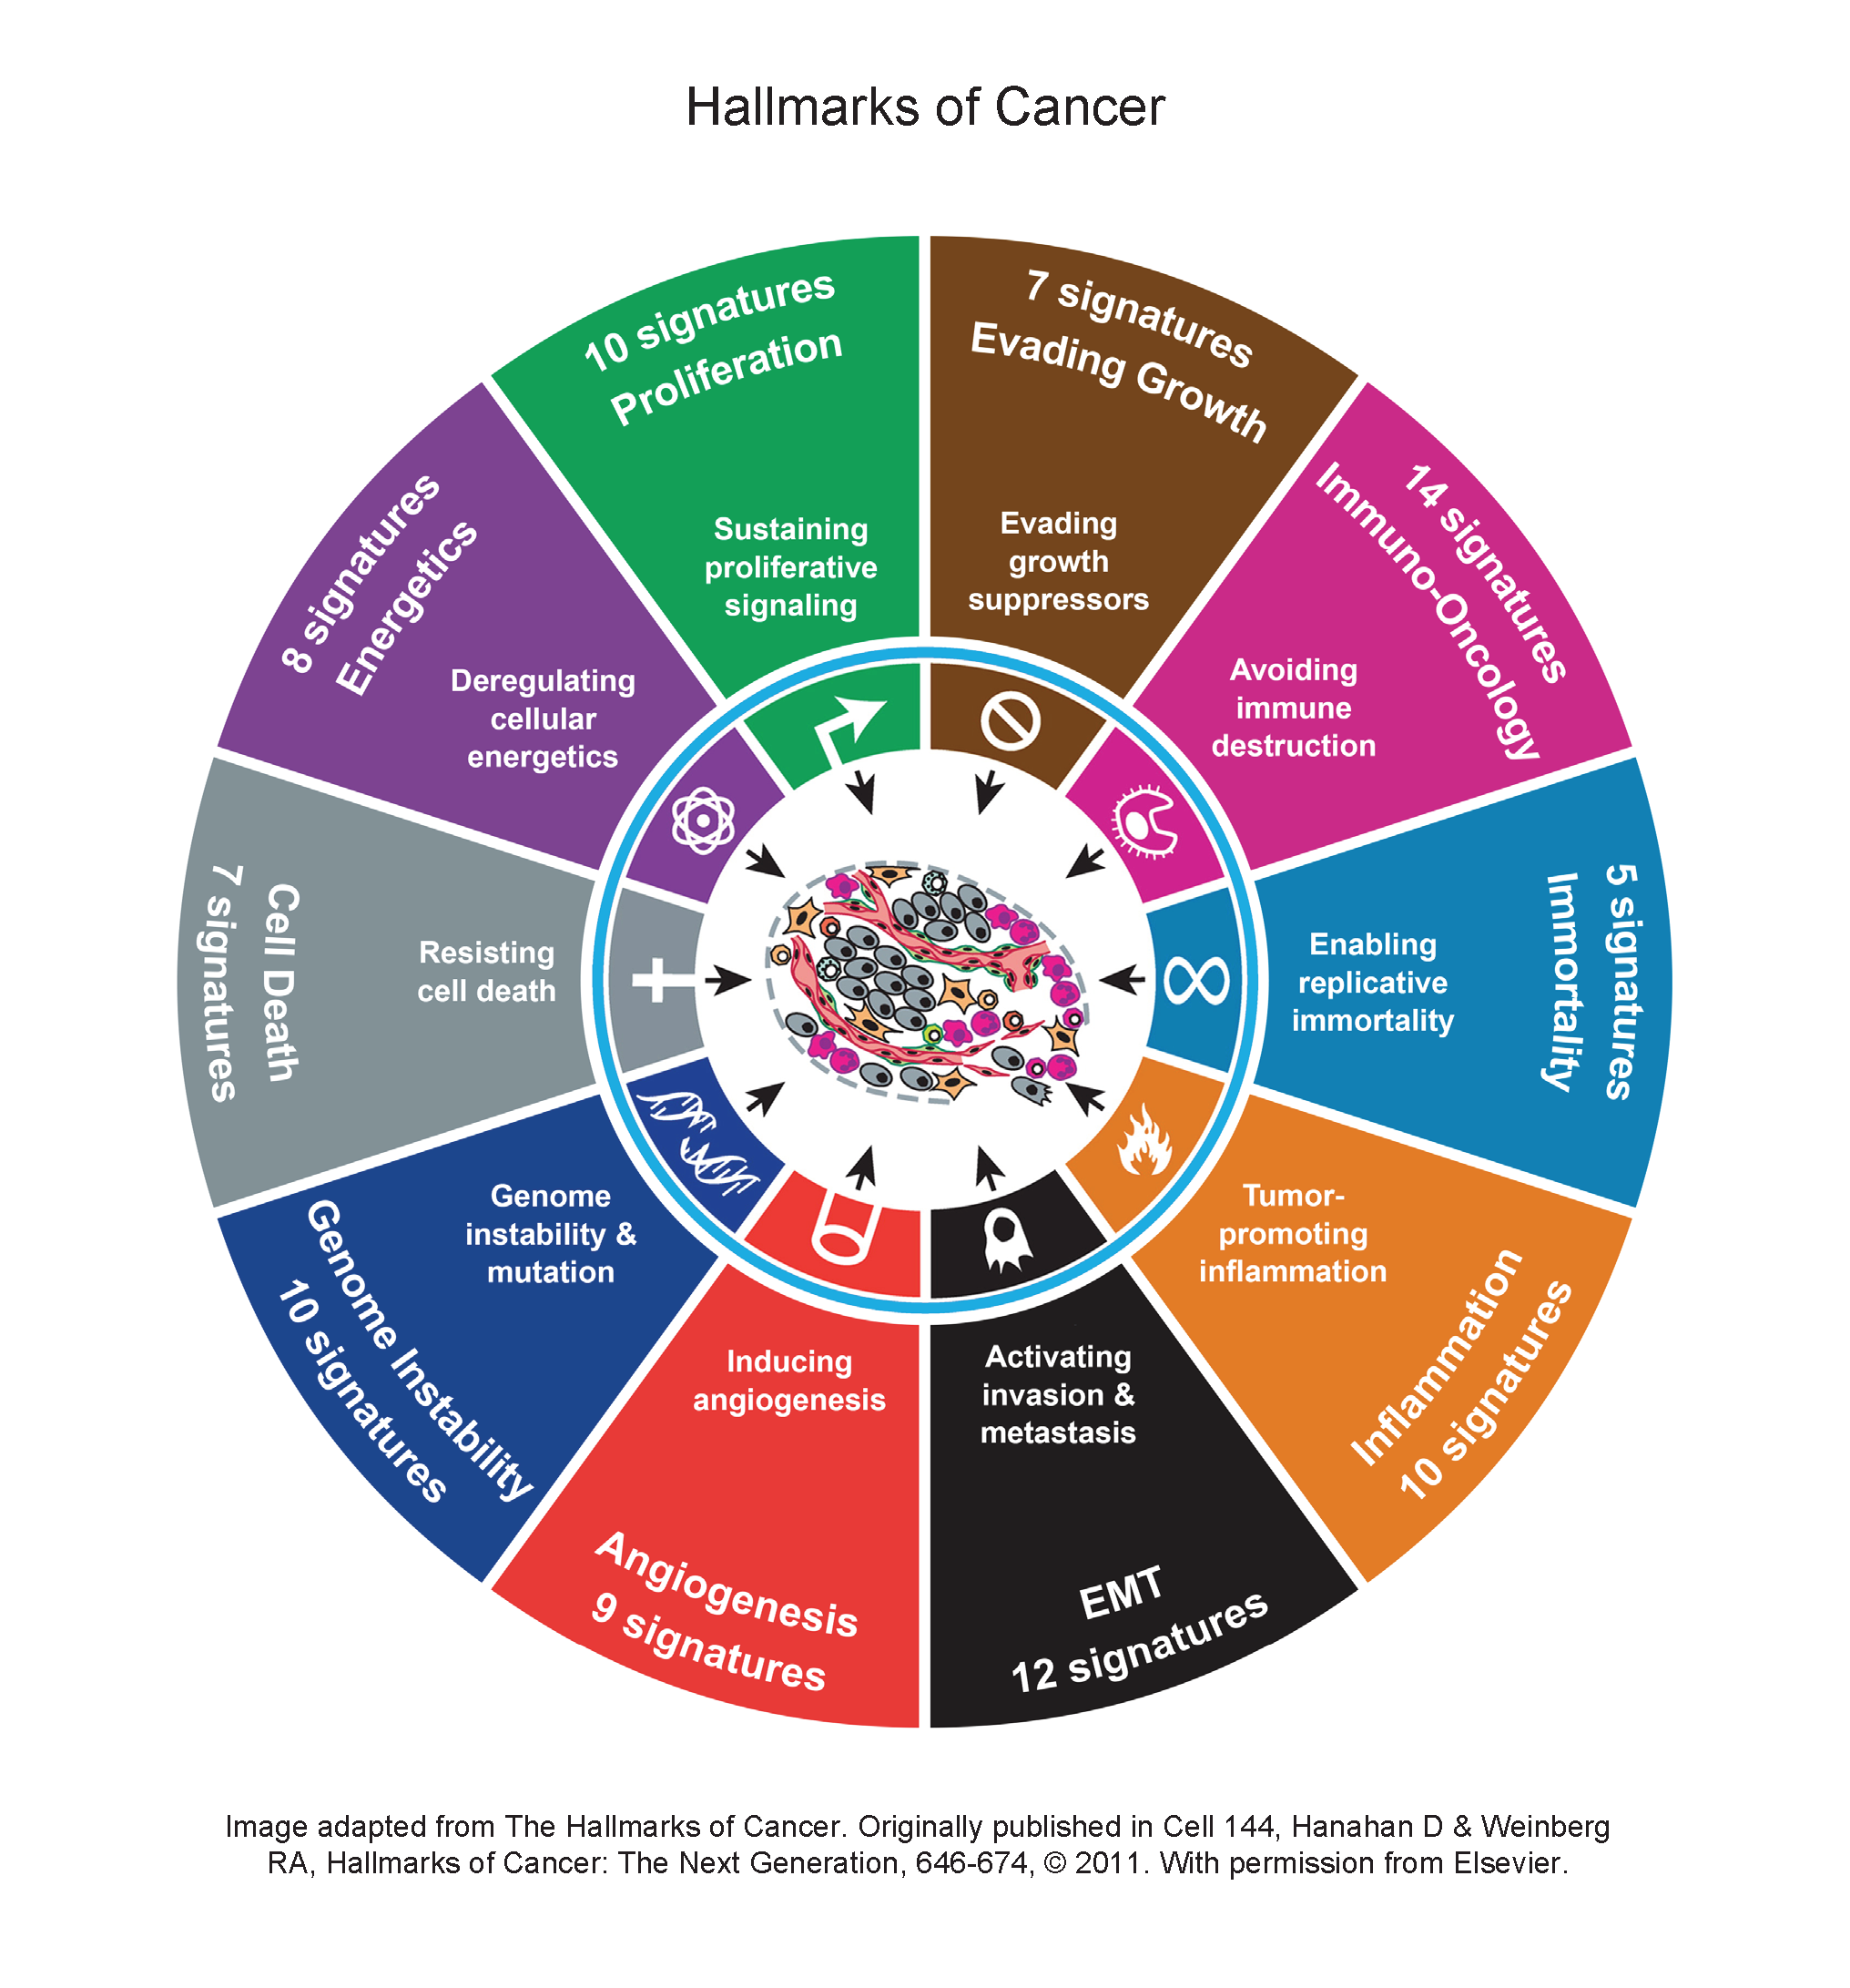 Hallmarks of Cancer